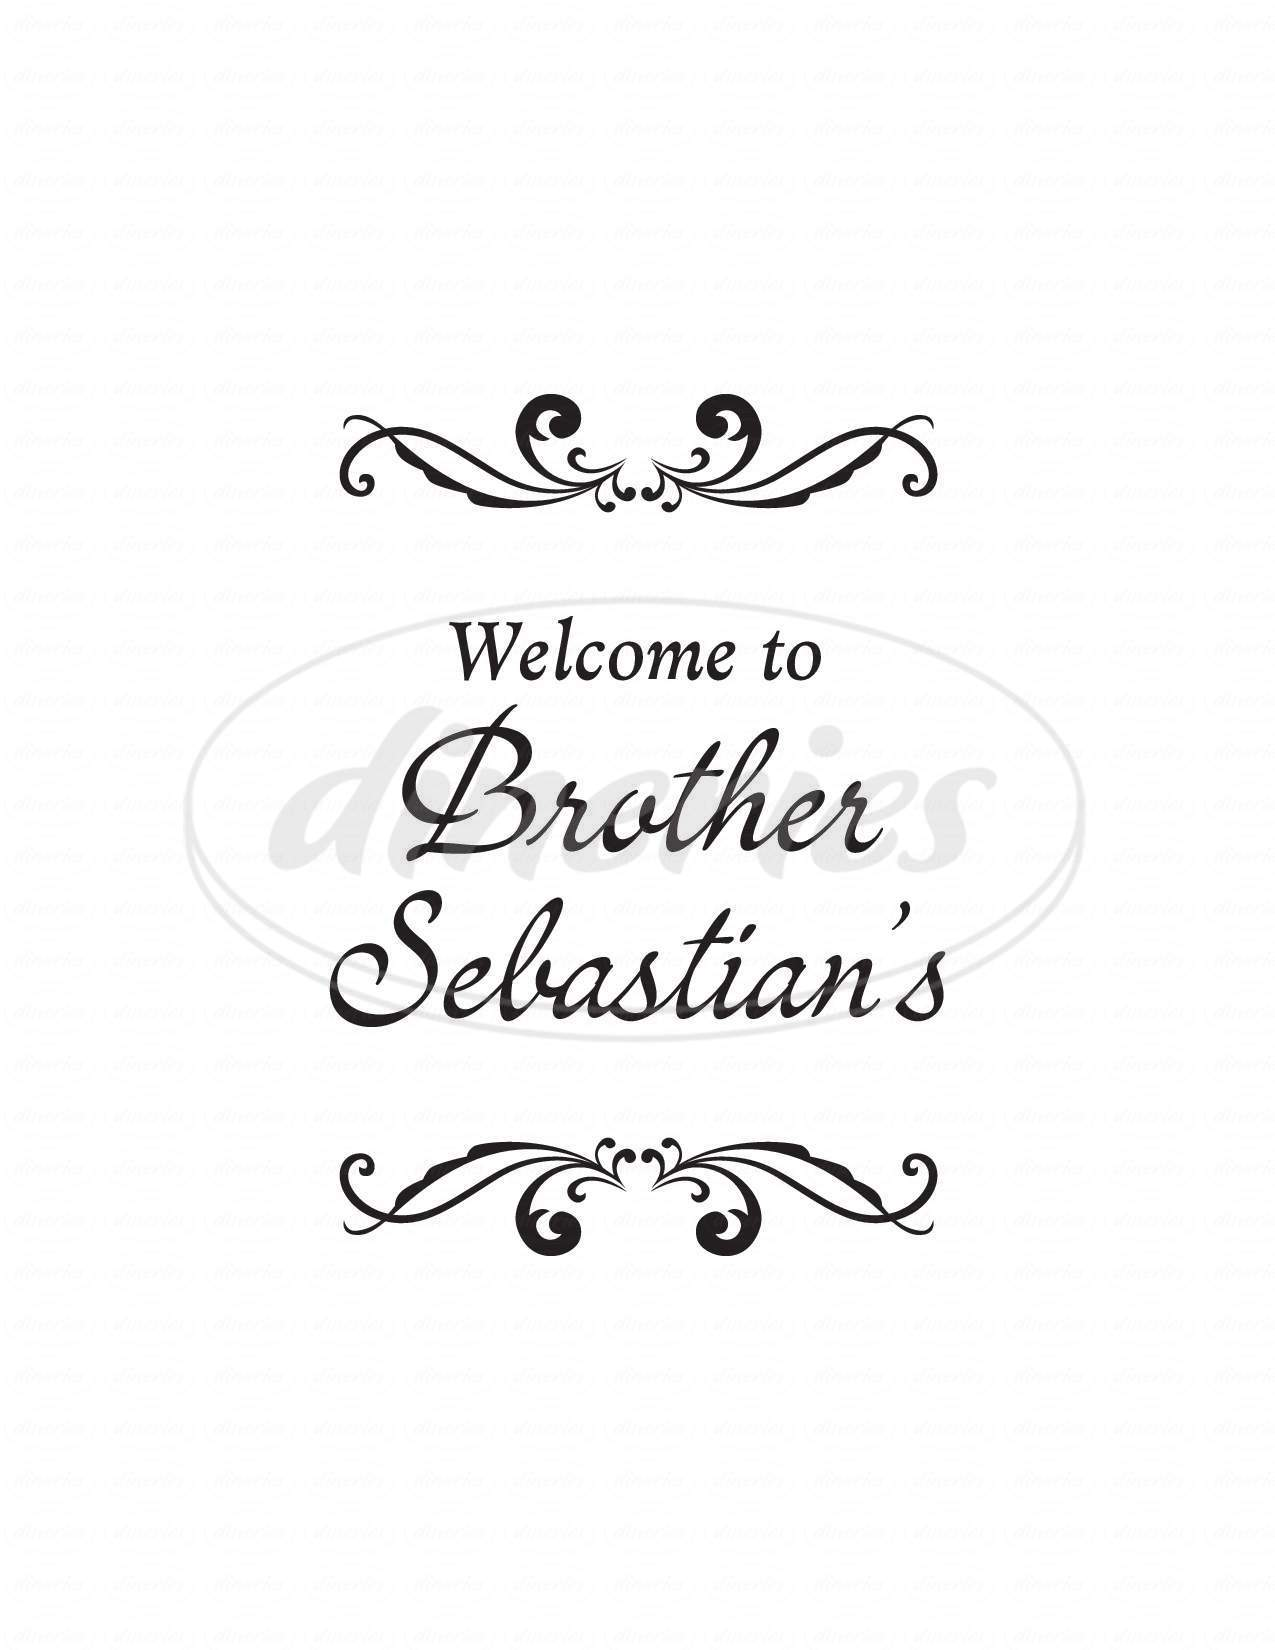 menu for Brother Sebastian's Steak House & Winery